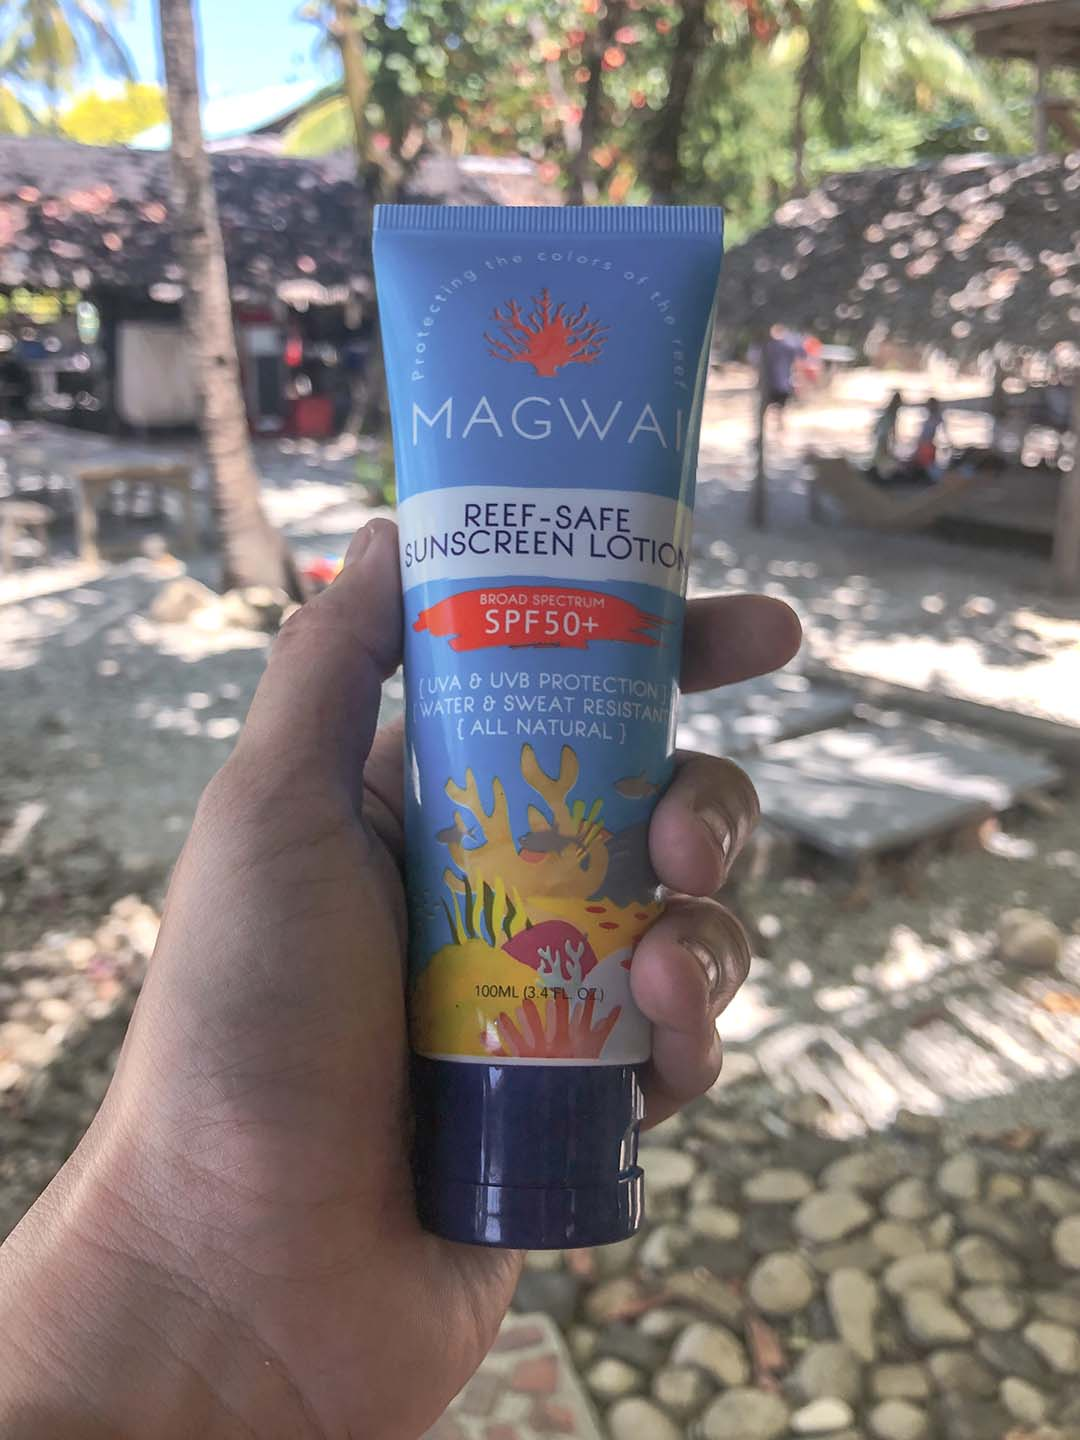 Magwai Reef-Safe Sunscreen在菲律宾制造